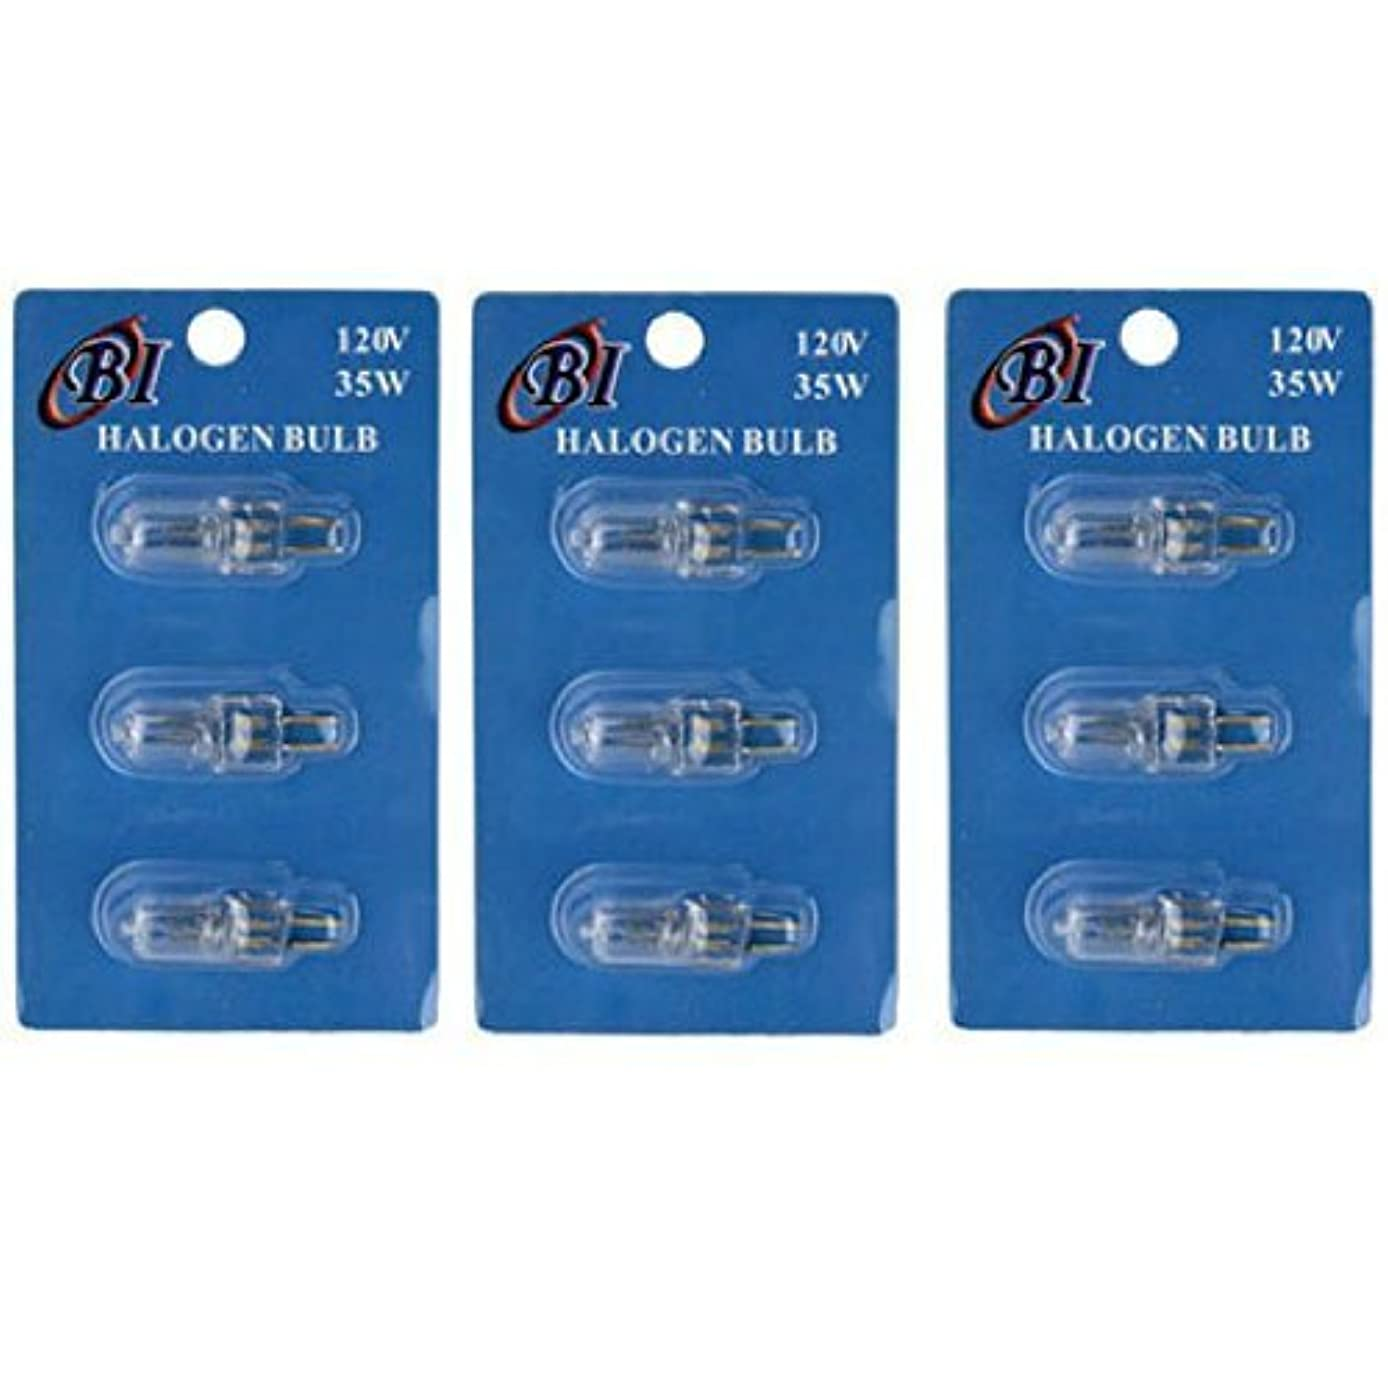 Halogen Bulb (for Electric Oil Warmers) - 35 watts - Small Halogen Bulb Lights - Used in Burning Candles and Oils (9)